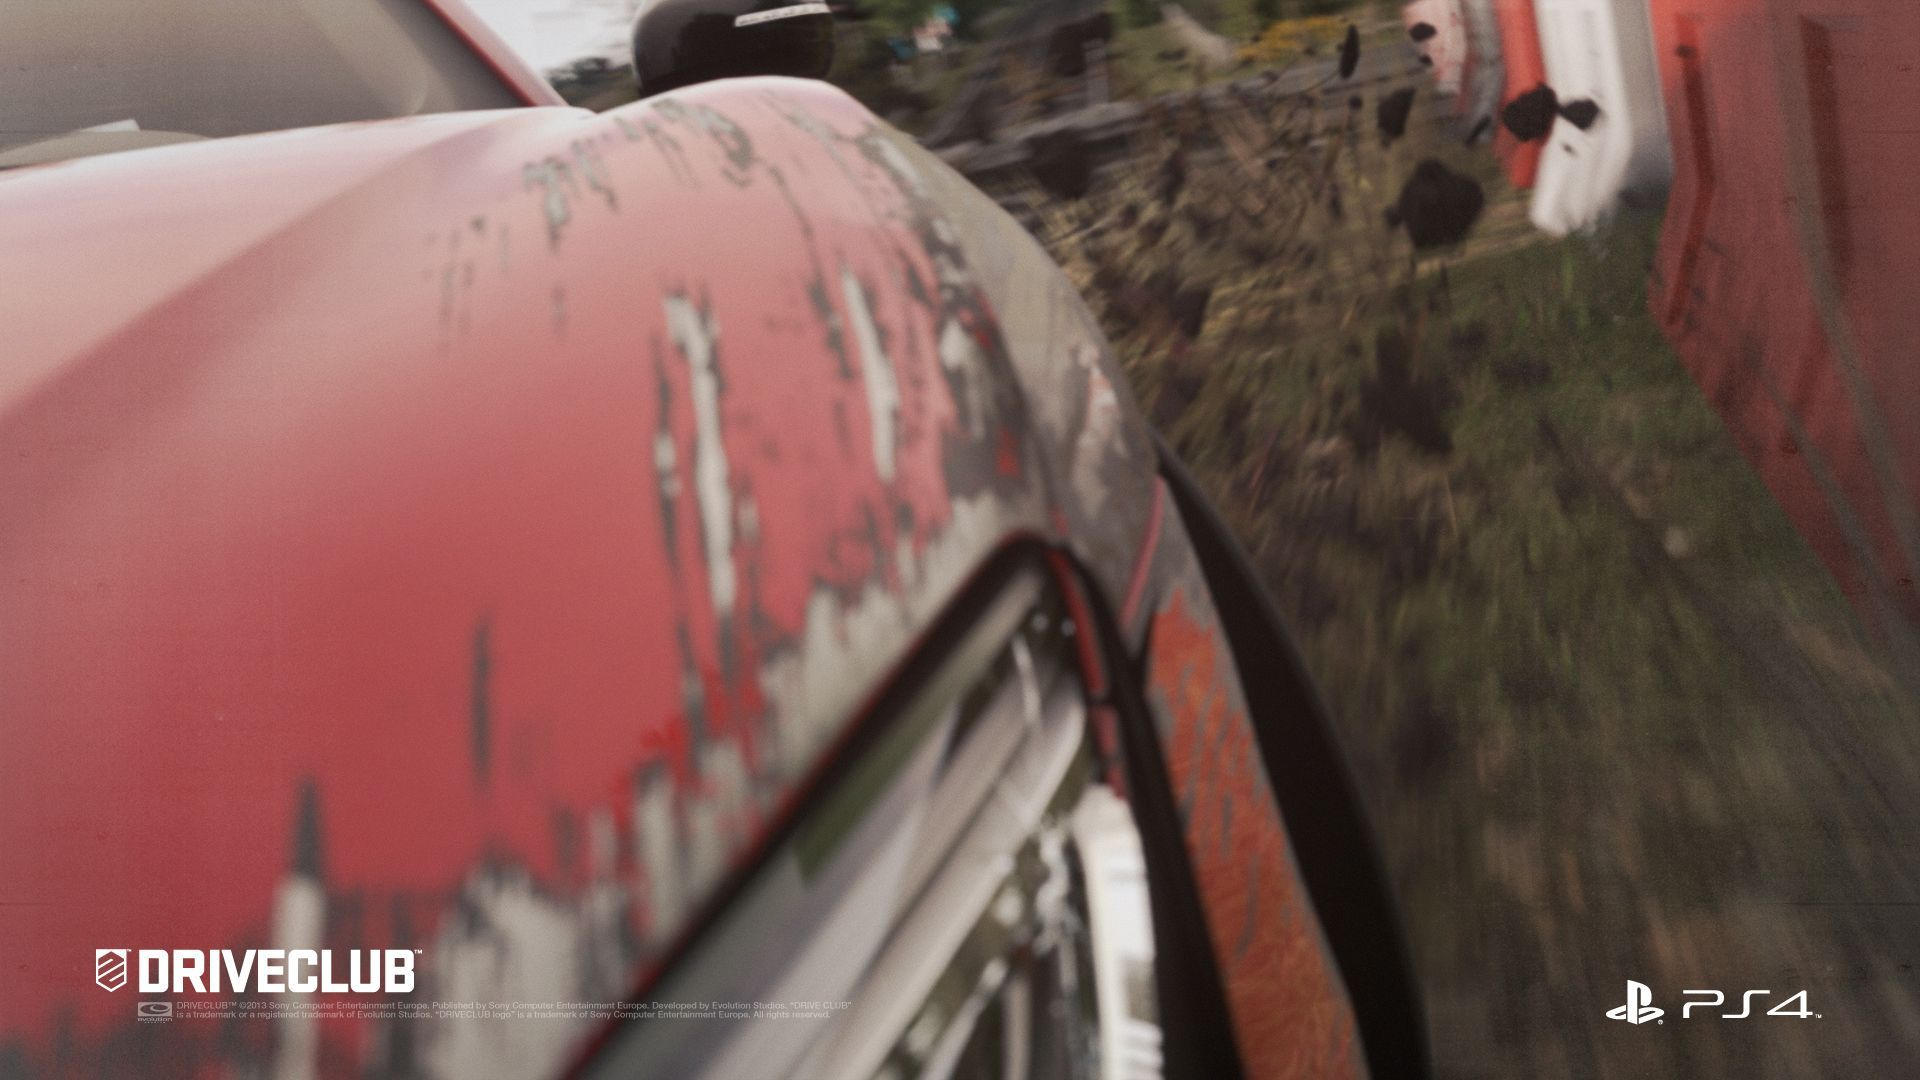 DriveClub (PS4) - 12